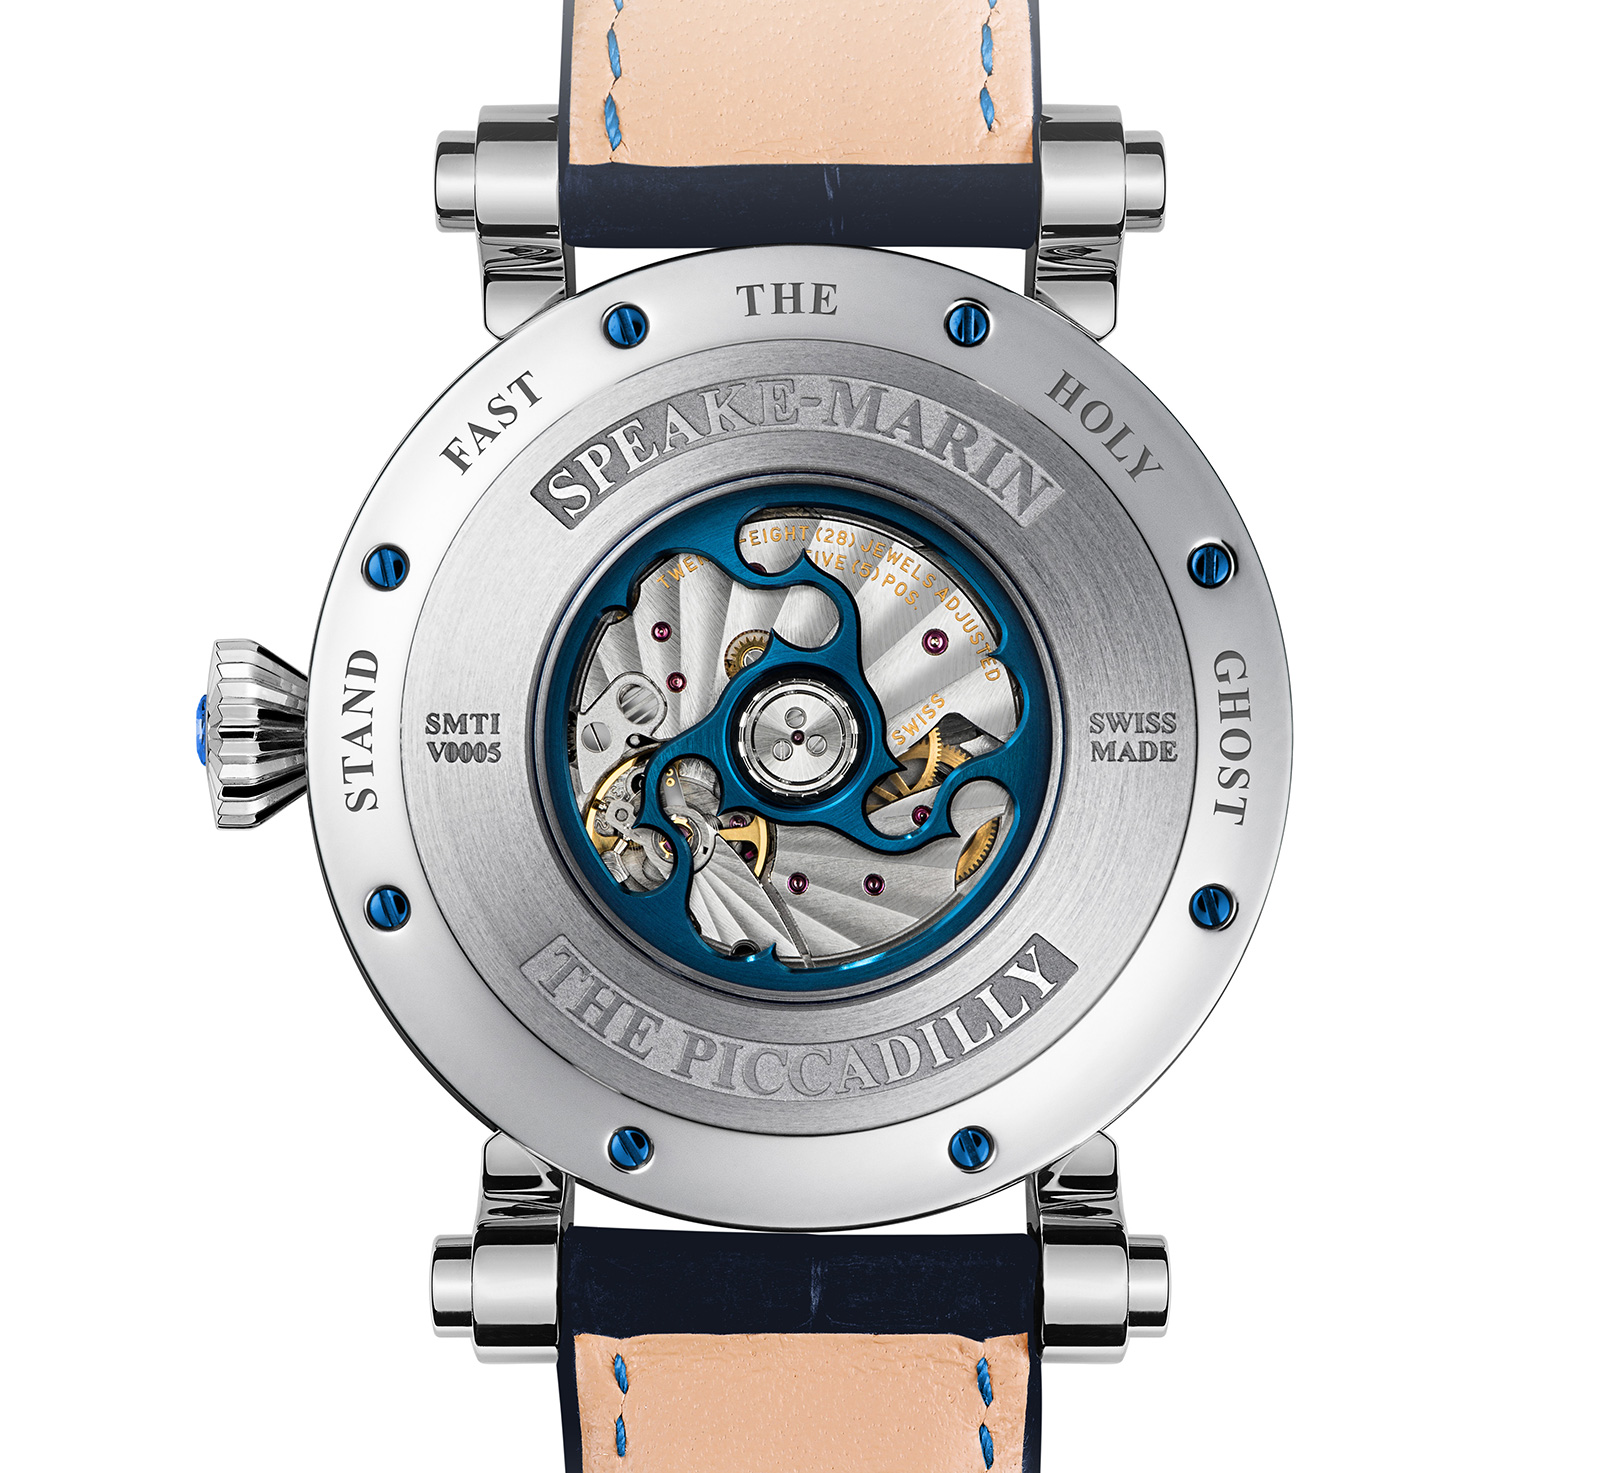 Speake-Marin Rum Watch 2